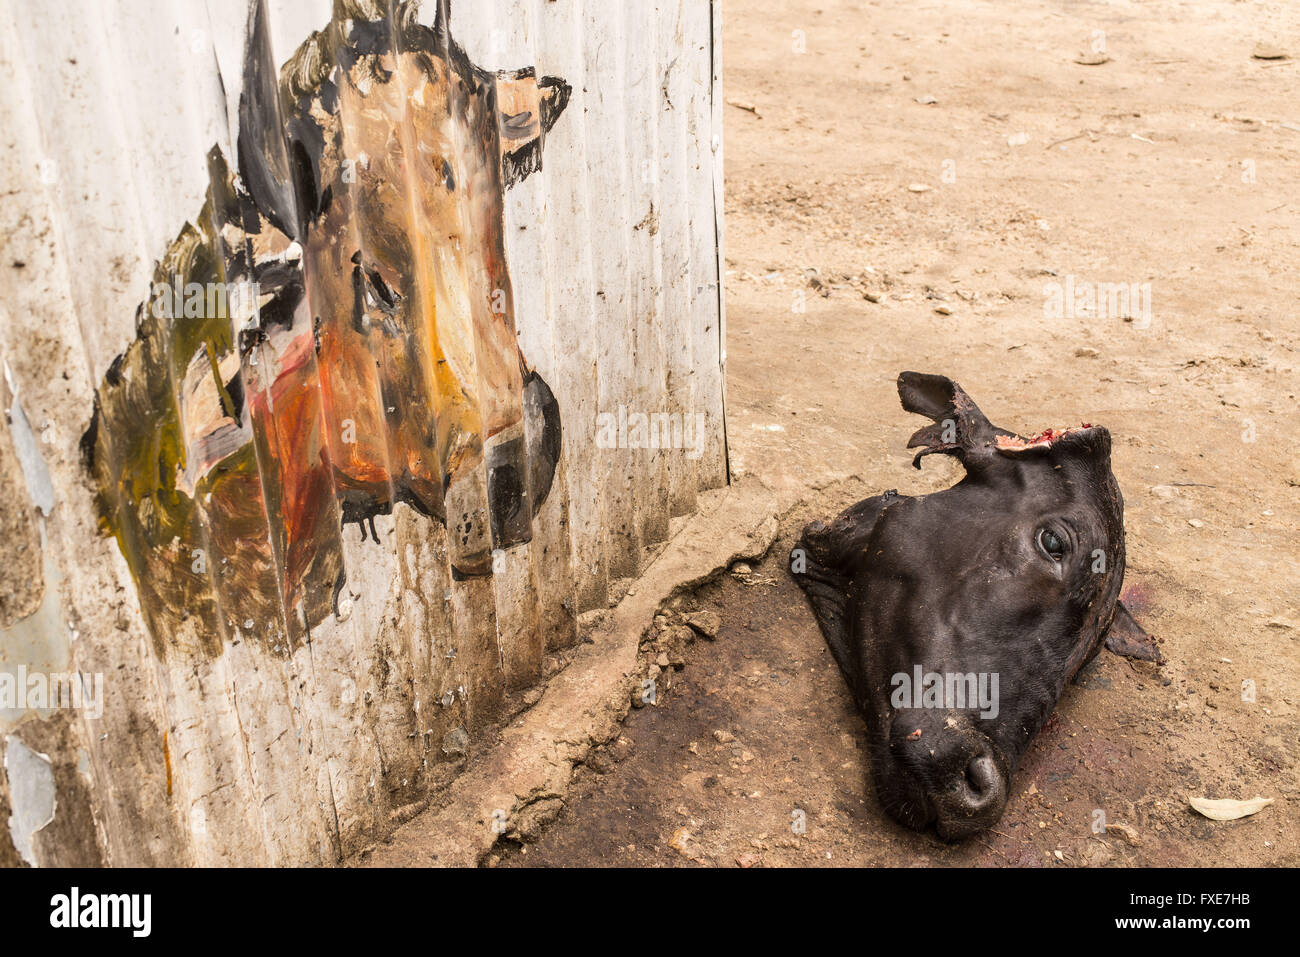 Head Of A Slaughtered Black Cow Laying On The Ground Next